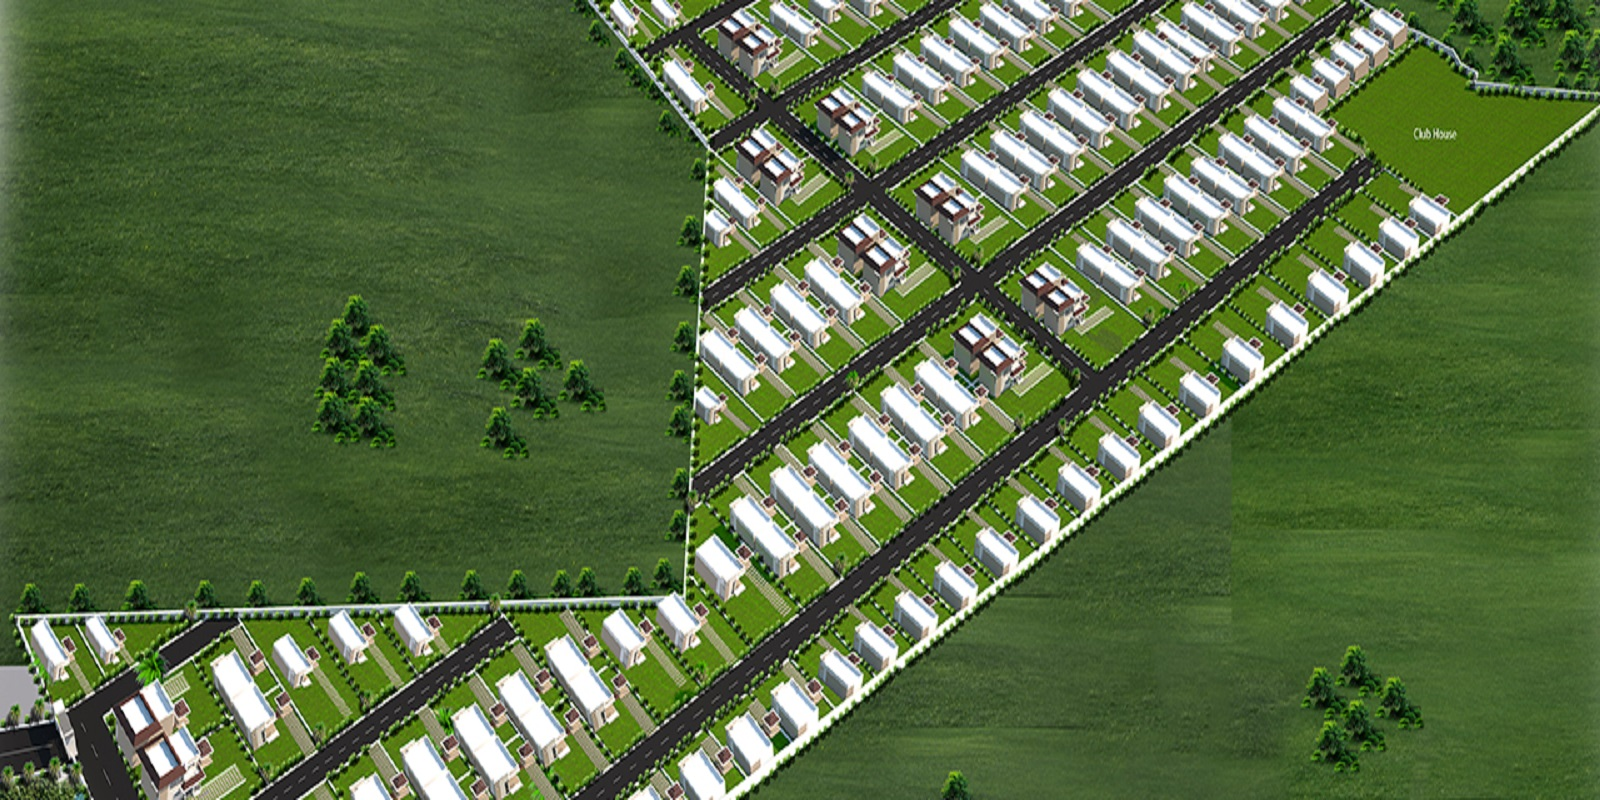 sn meadows project project large image1